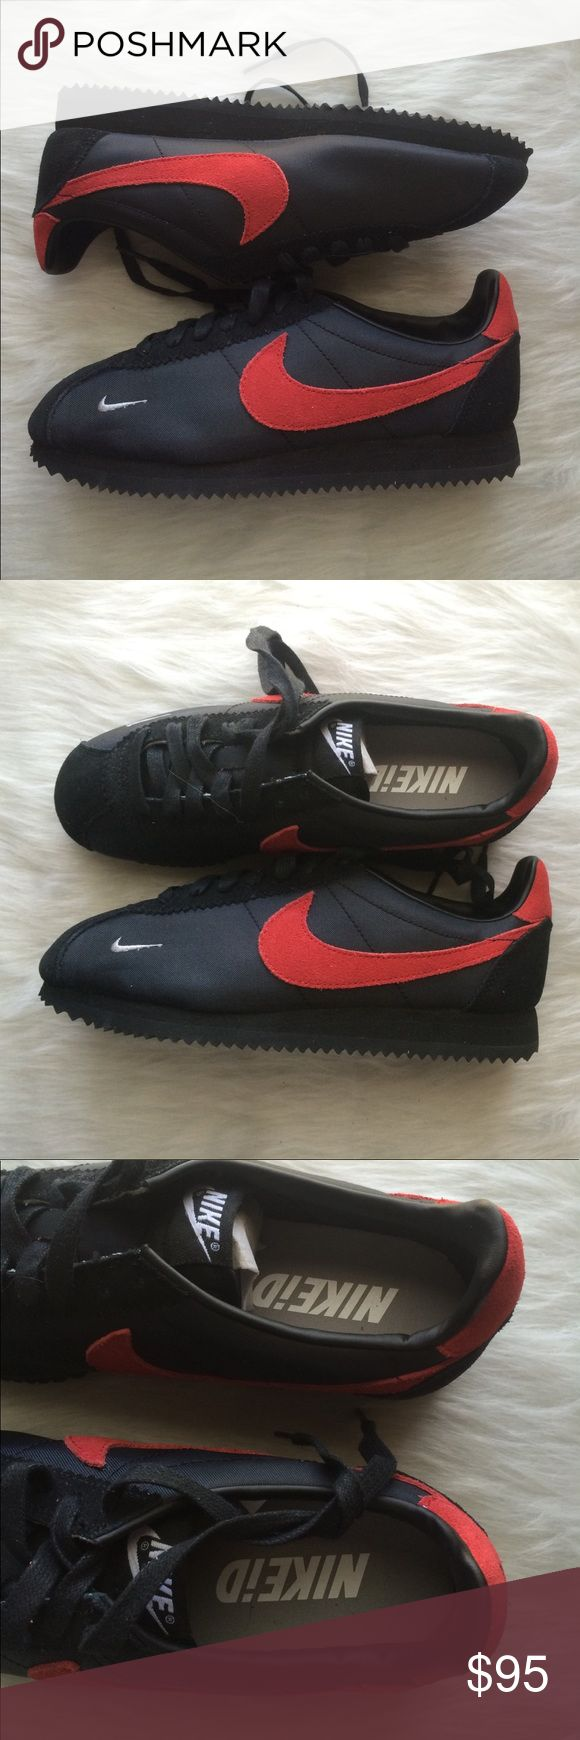 NIKE iD CUSTOM WOMENS SIZE 7.5 CORTEZ SHOES New without box. Nike Shoes Sneakers